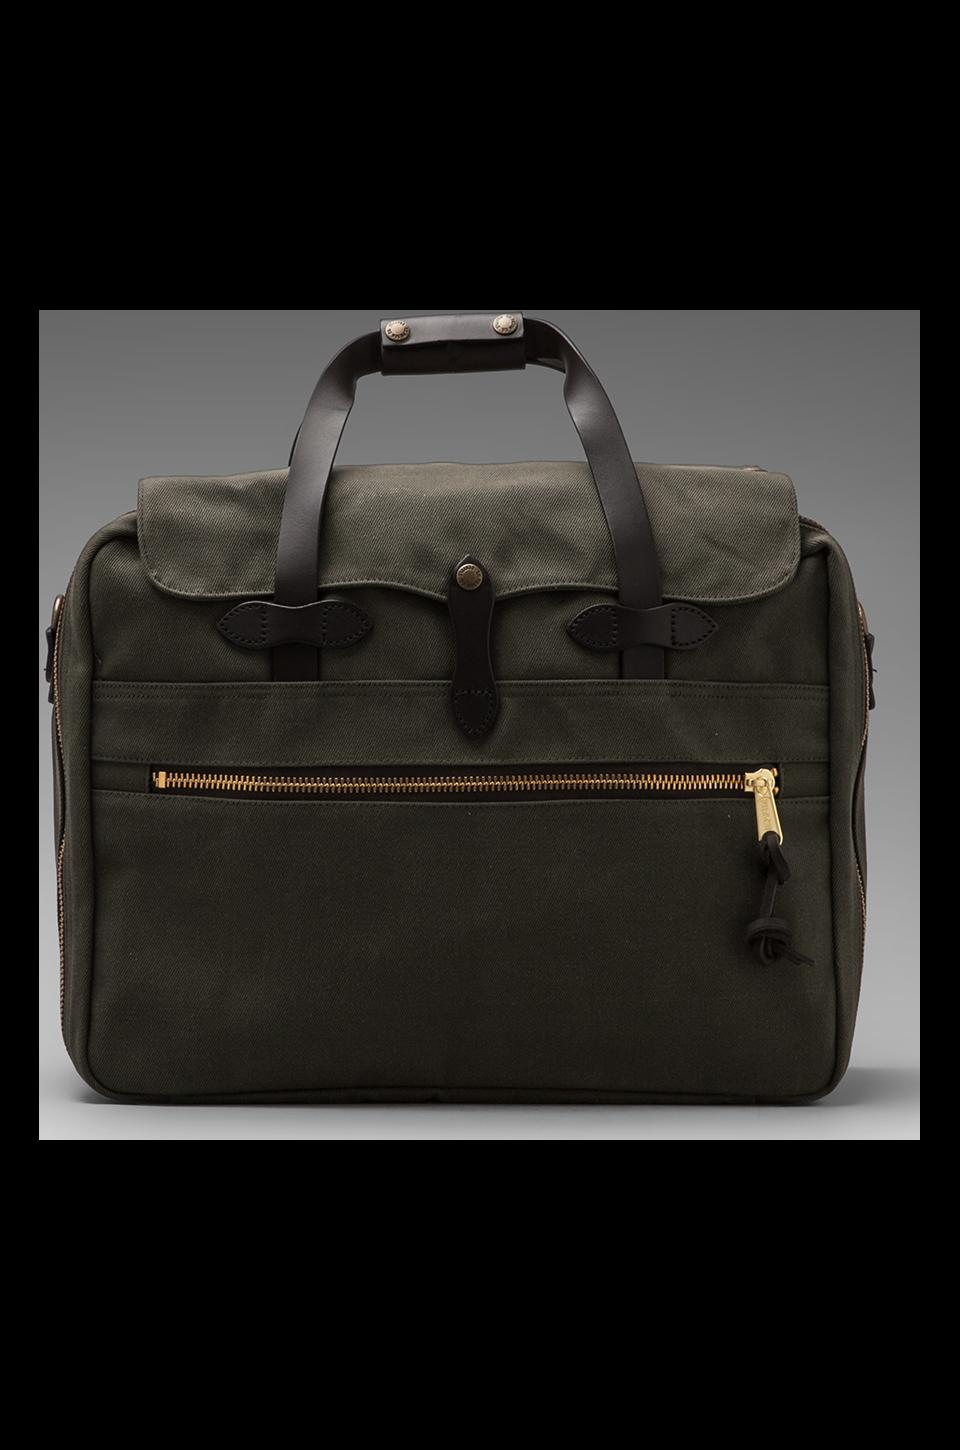 Filson Large Twill Carry-On Travel in Otter Green